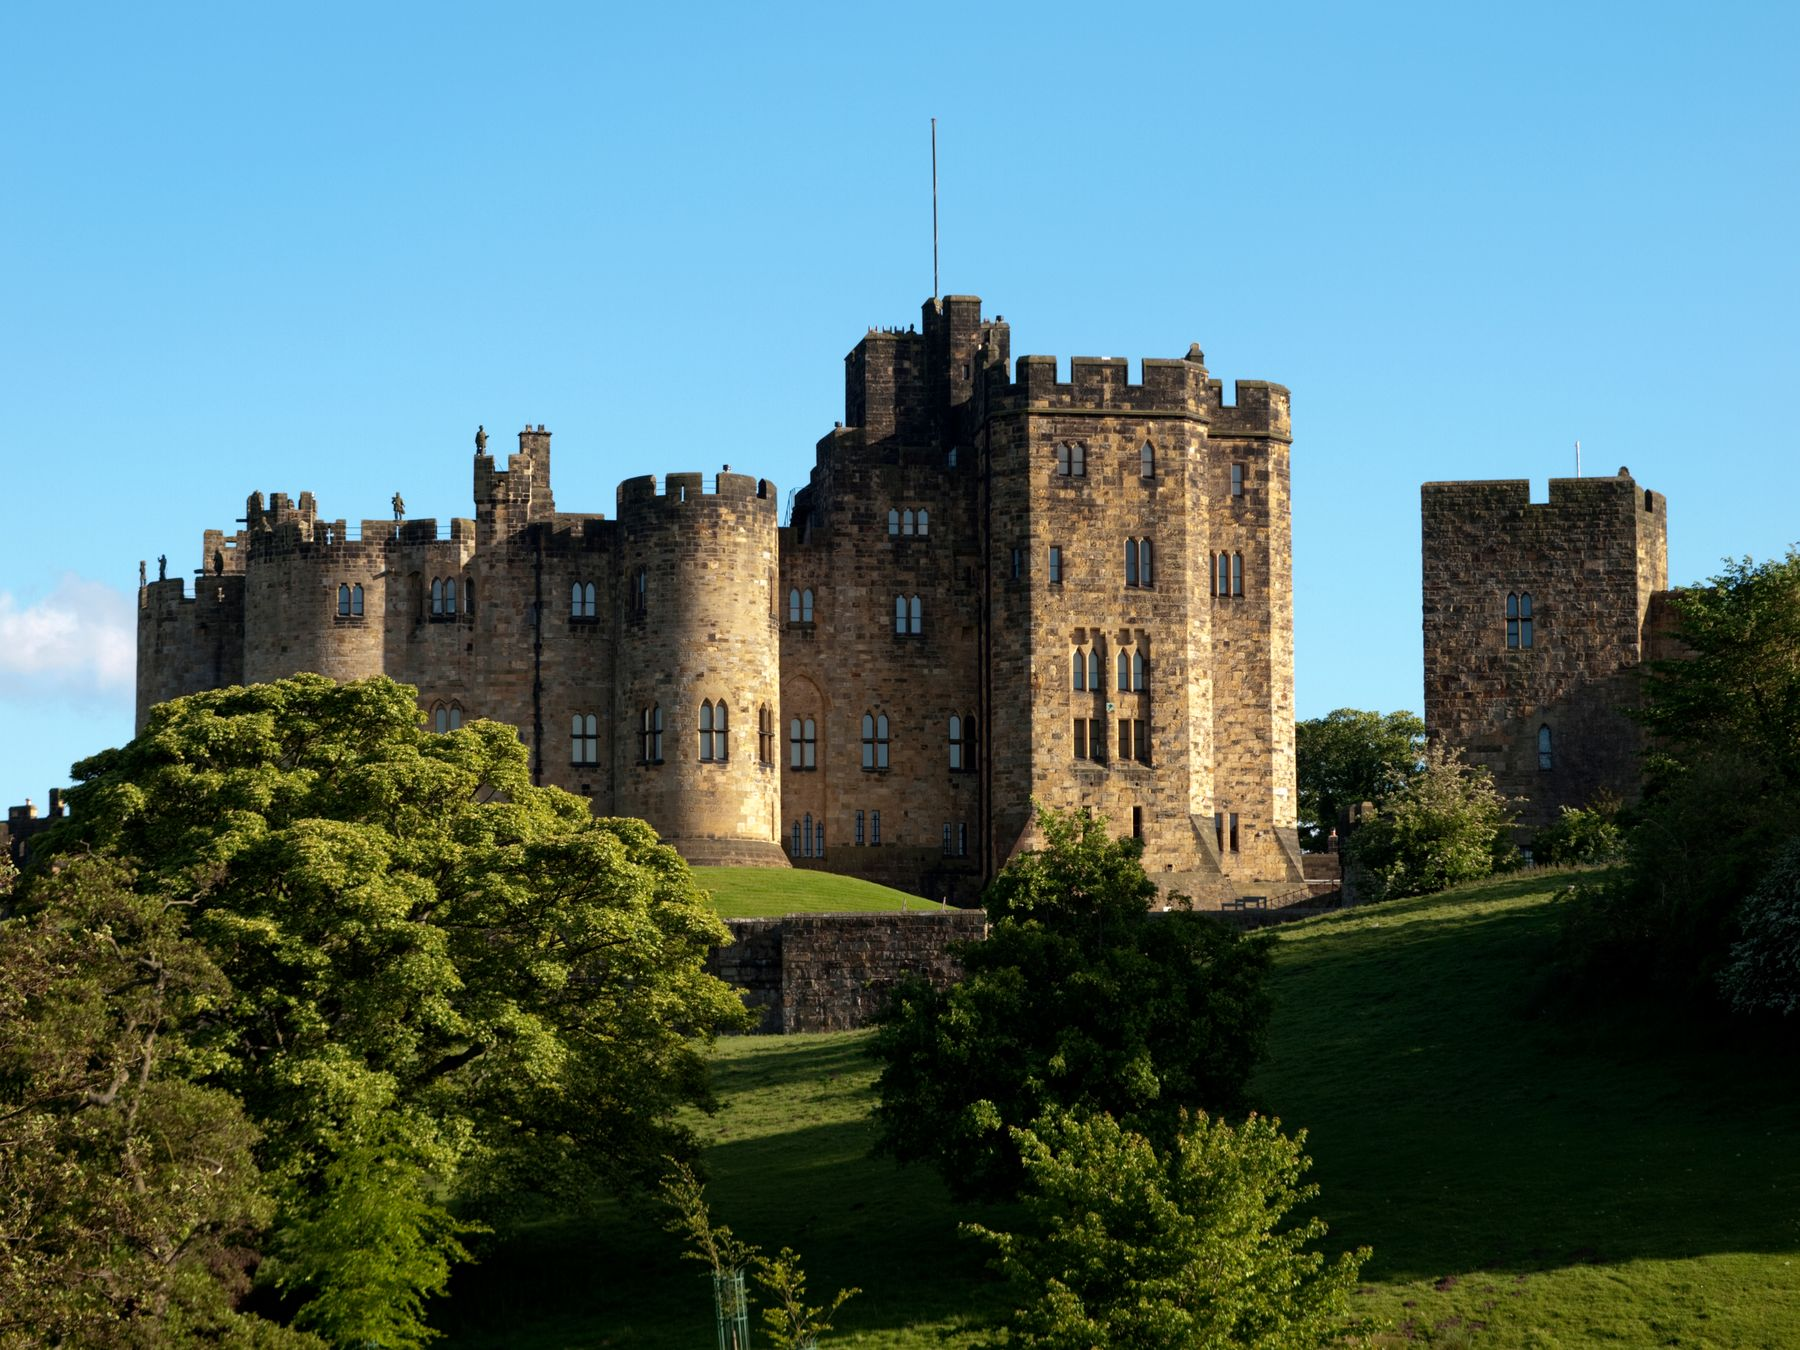 Alnwick castle on top of a green hill with blue sky in the background